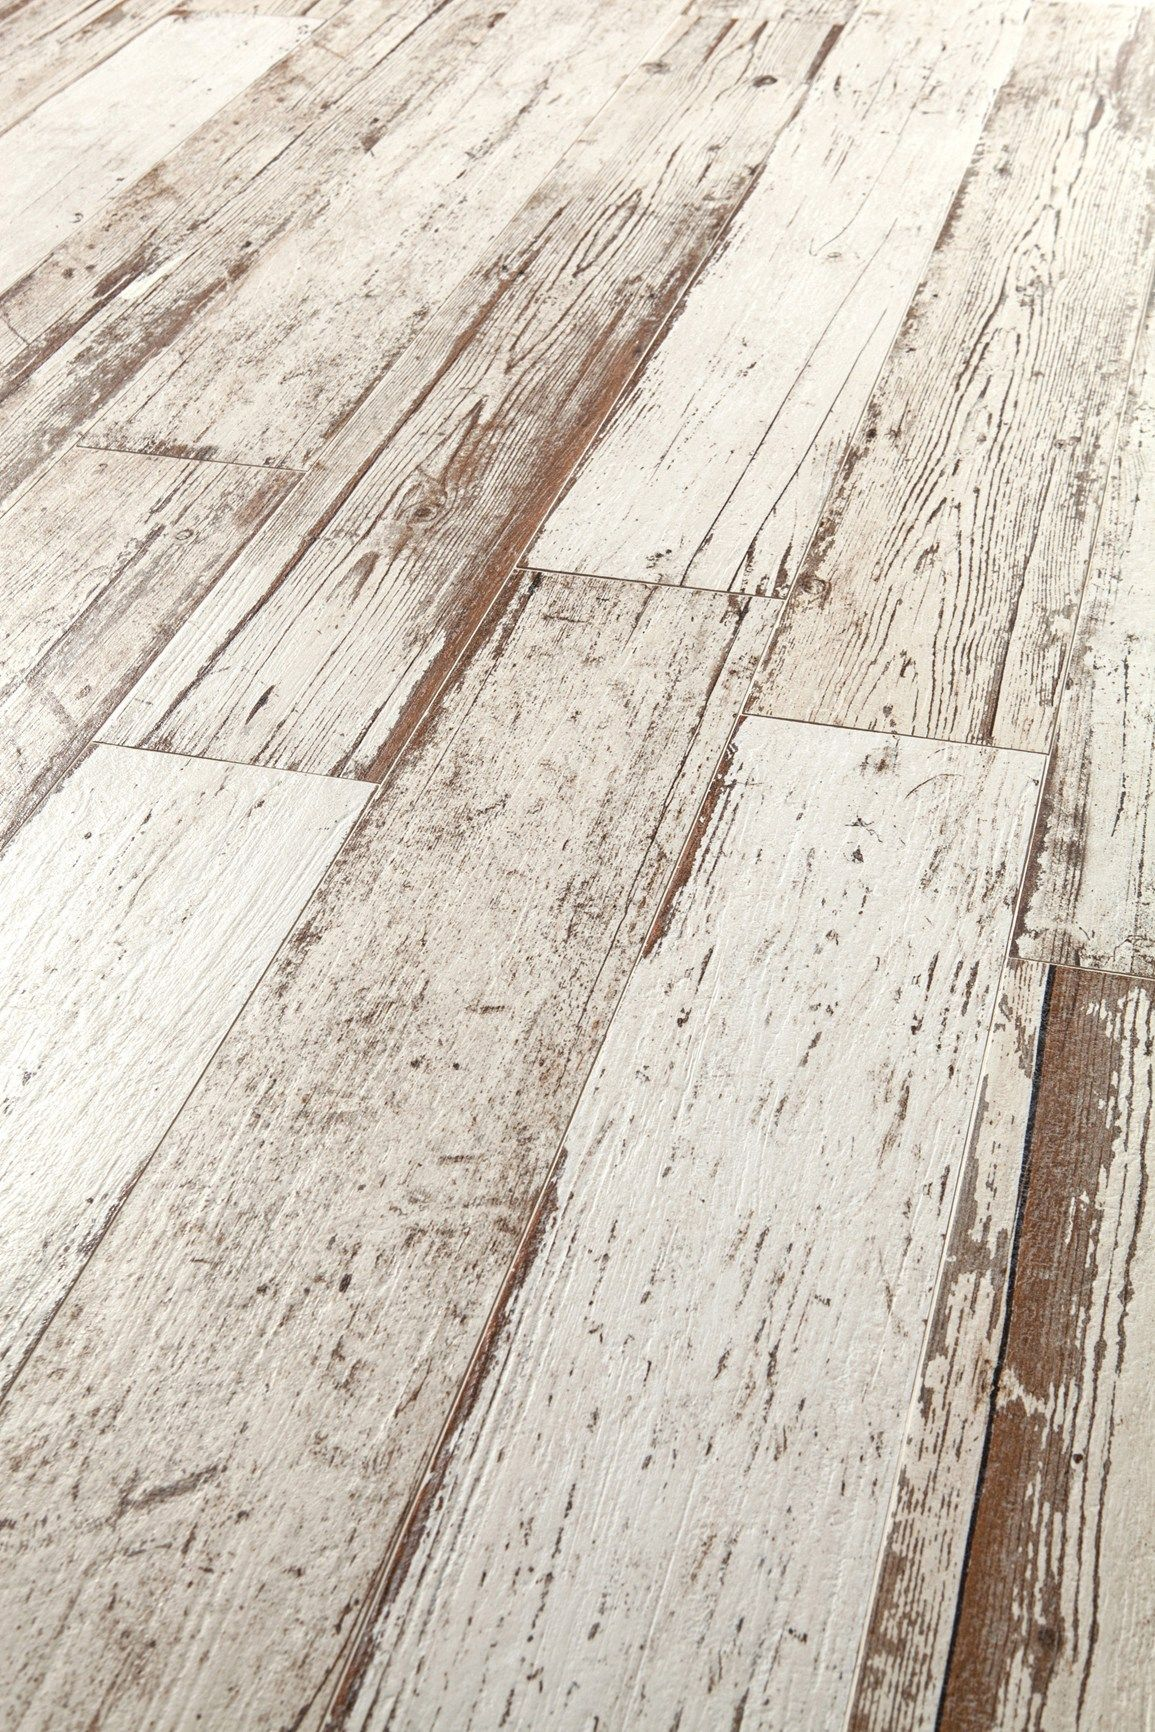 Amazing distressed wood looking tile porcelain tile porcelain amazing distressed wood looking tile porcelain tile that looks like distressed wood link shows various colors would be pretty for floors or backsplashes dailygadgetfo Image collections